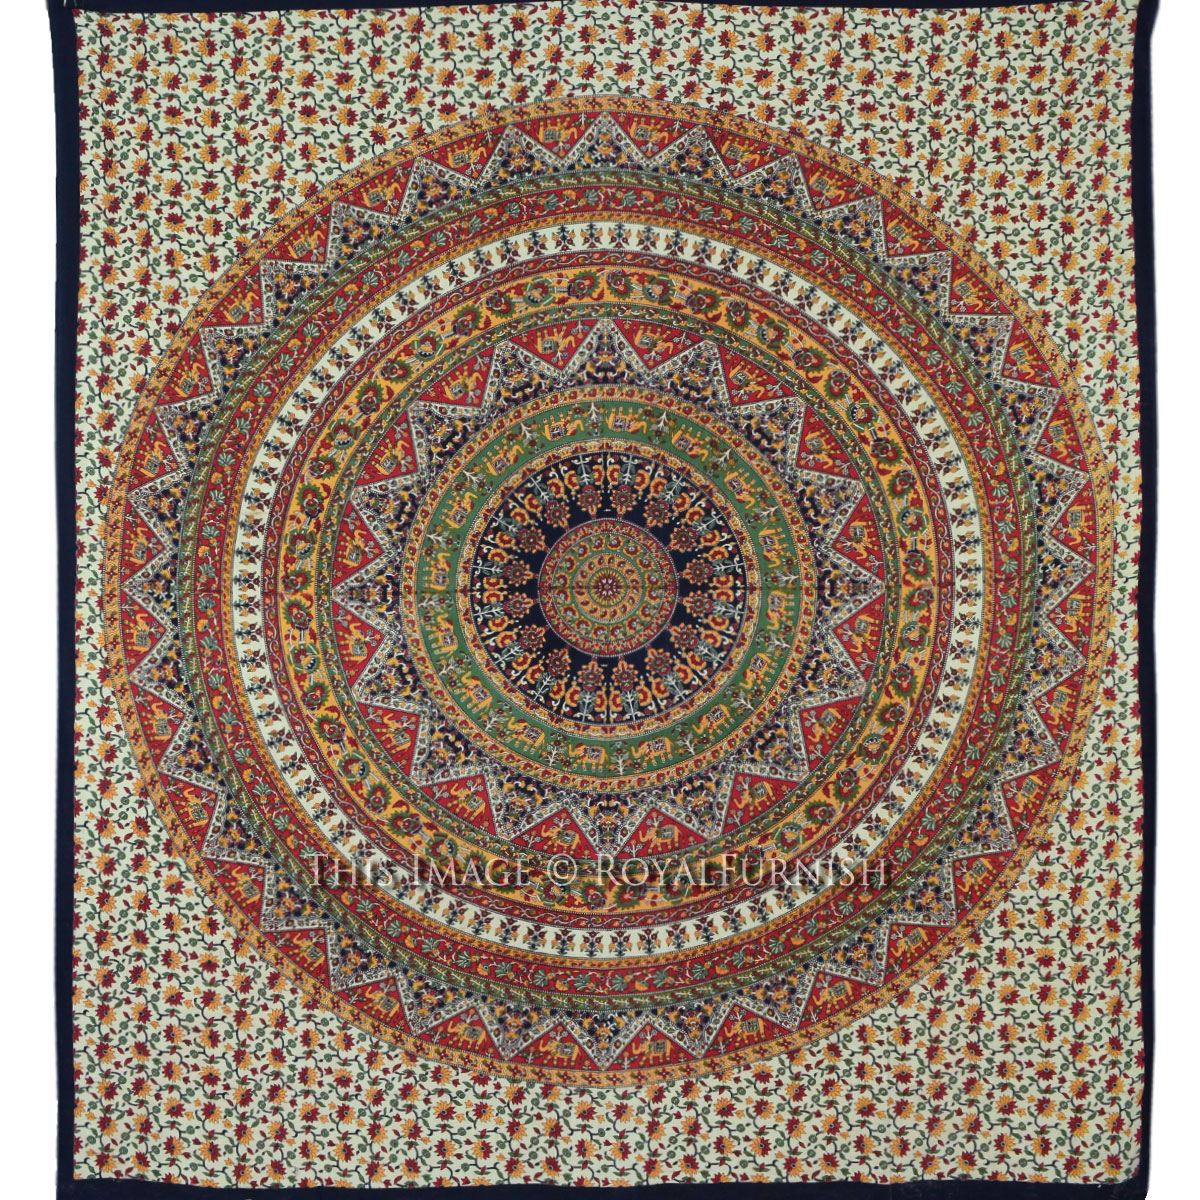 Queen Orange Multicolor Hippie Mandala Bohemian Tapestry ...